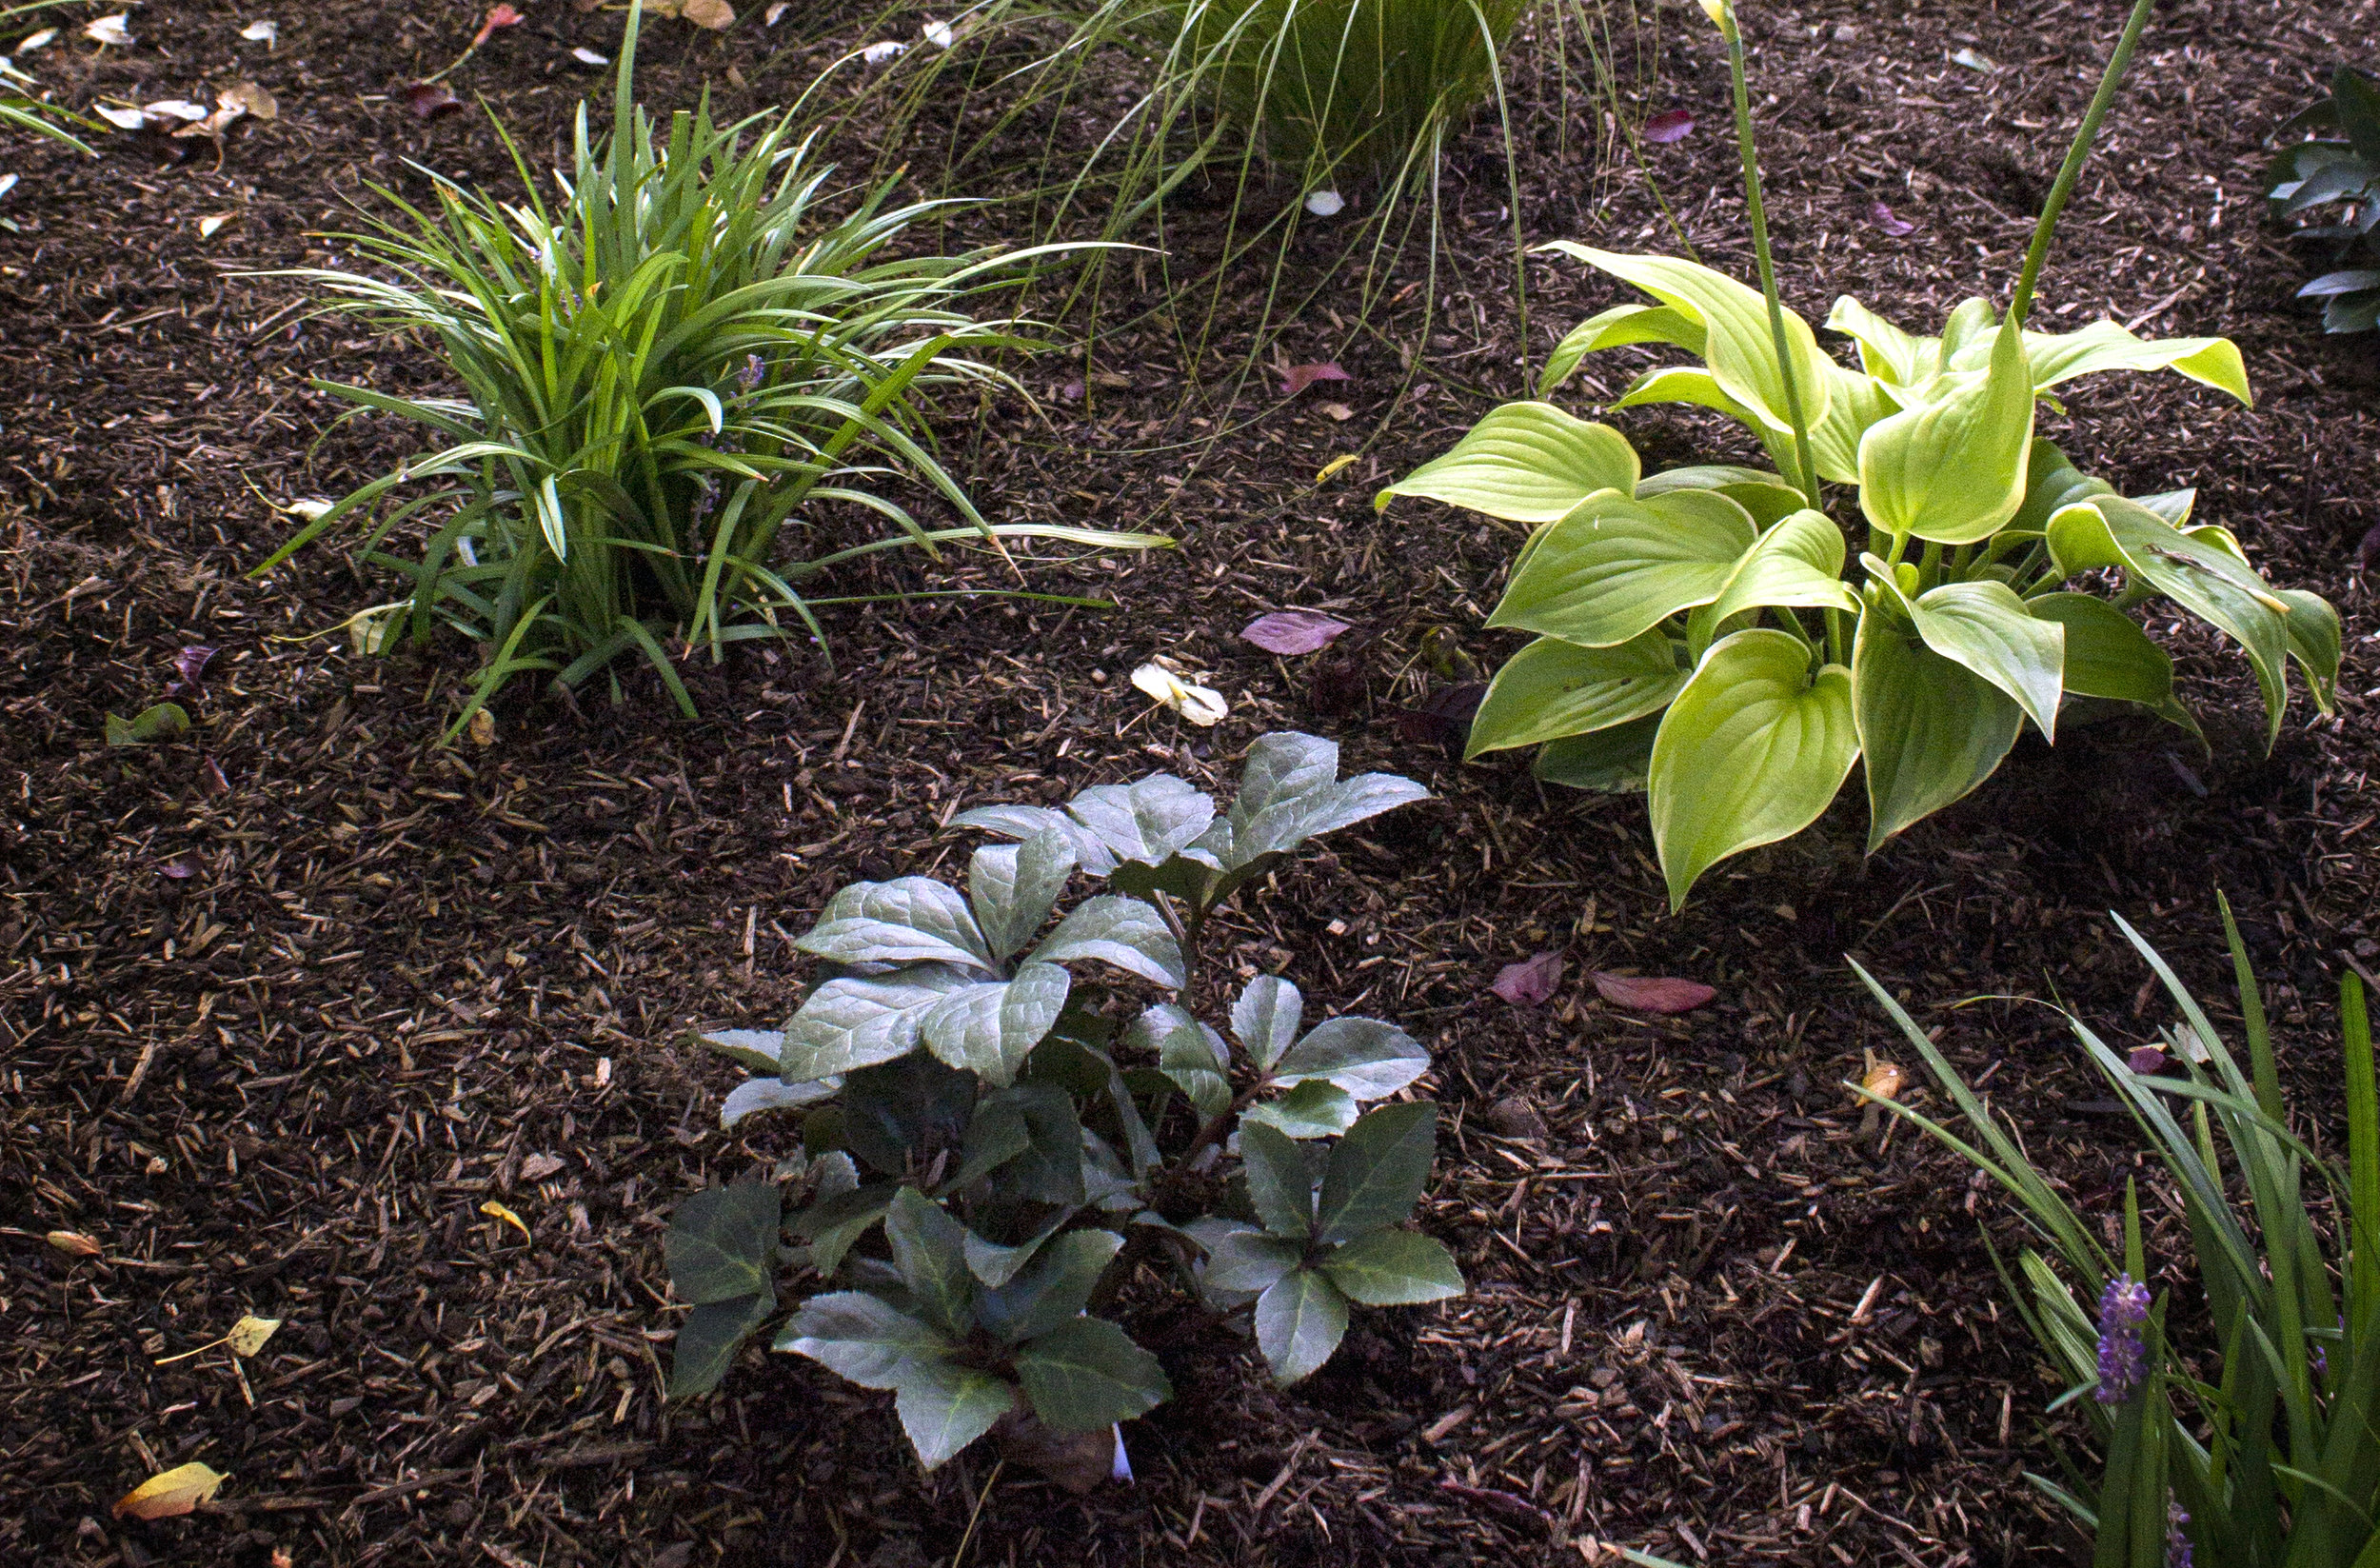 G&B Organics Soil-Building Conditioner (one of our favorite compost products) used as a mulch.